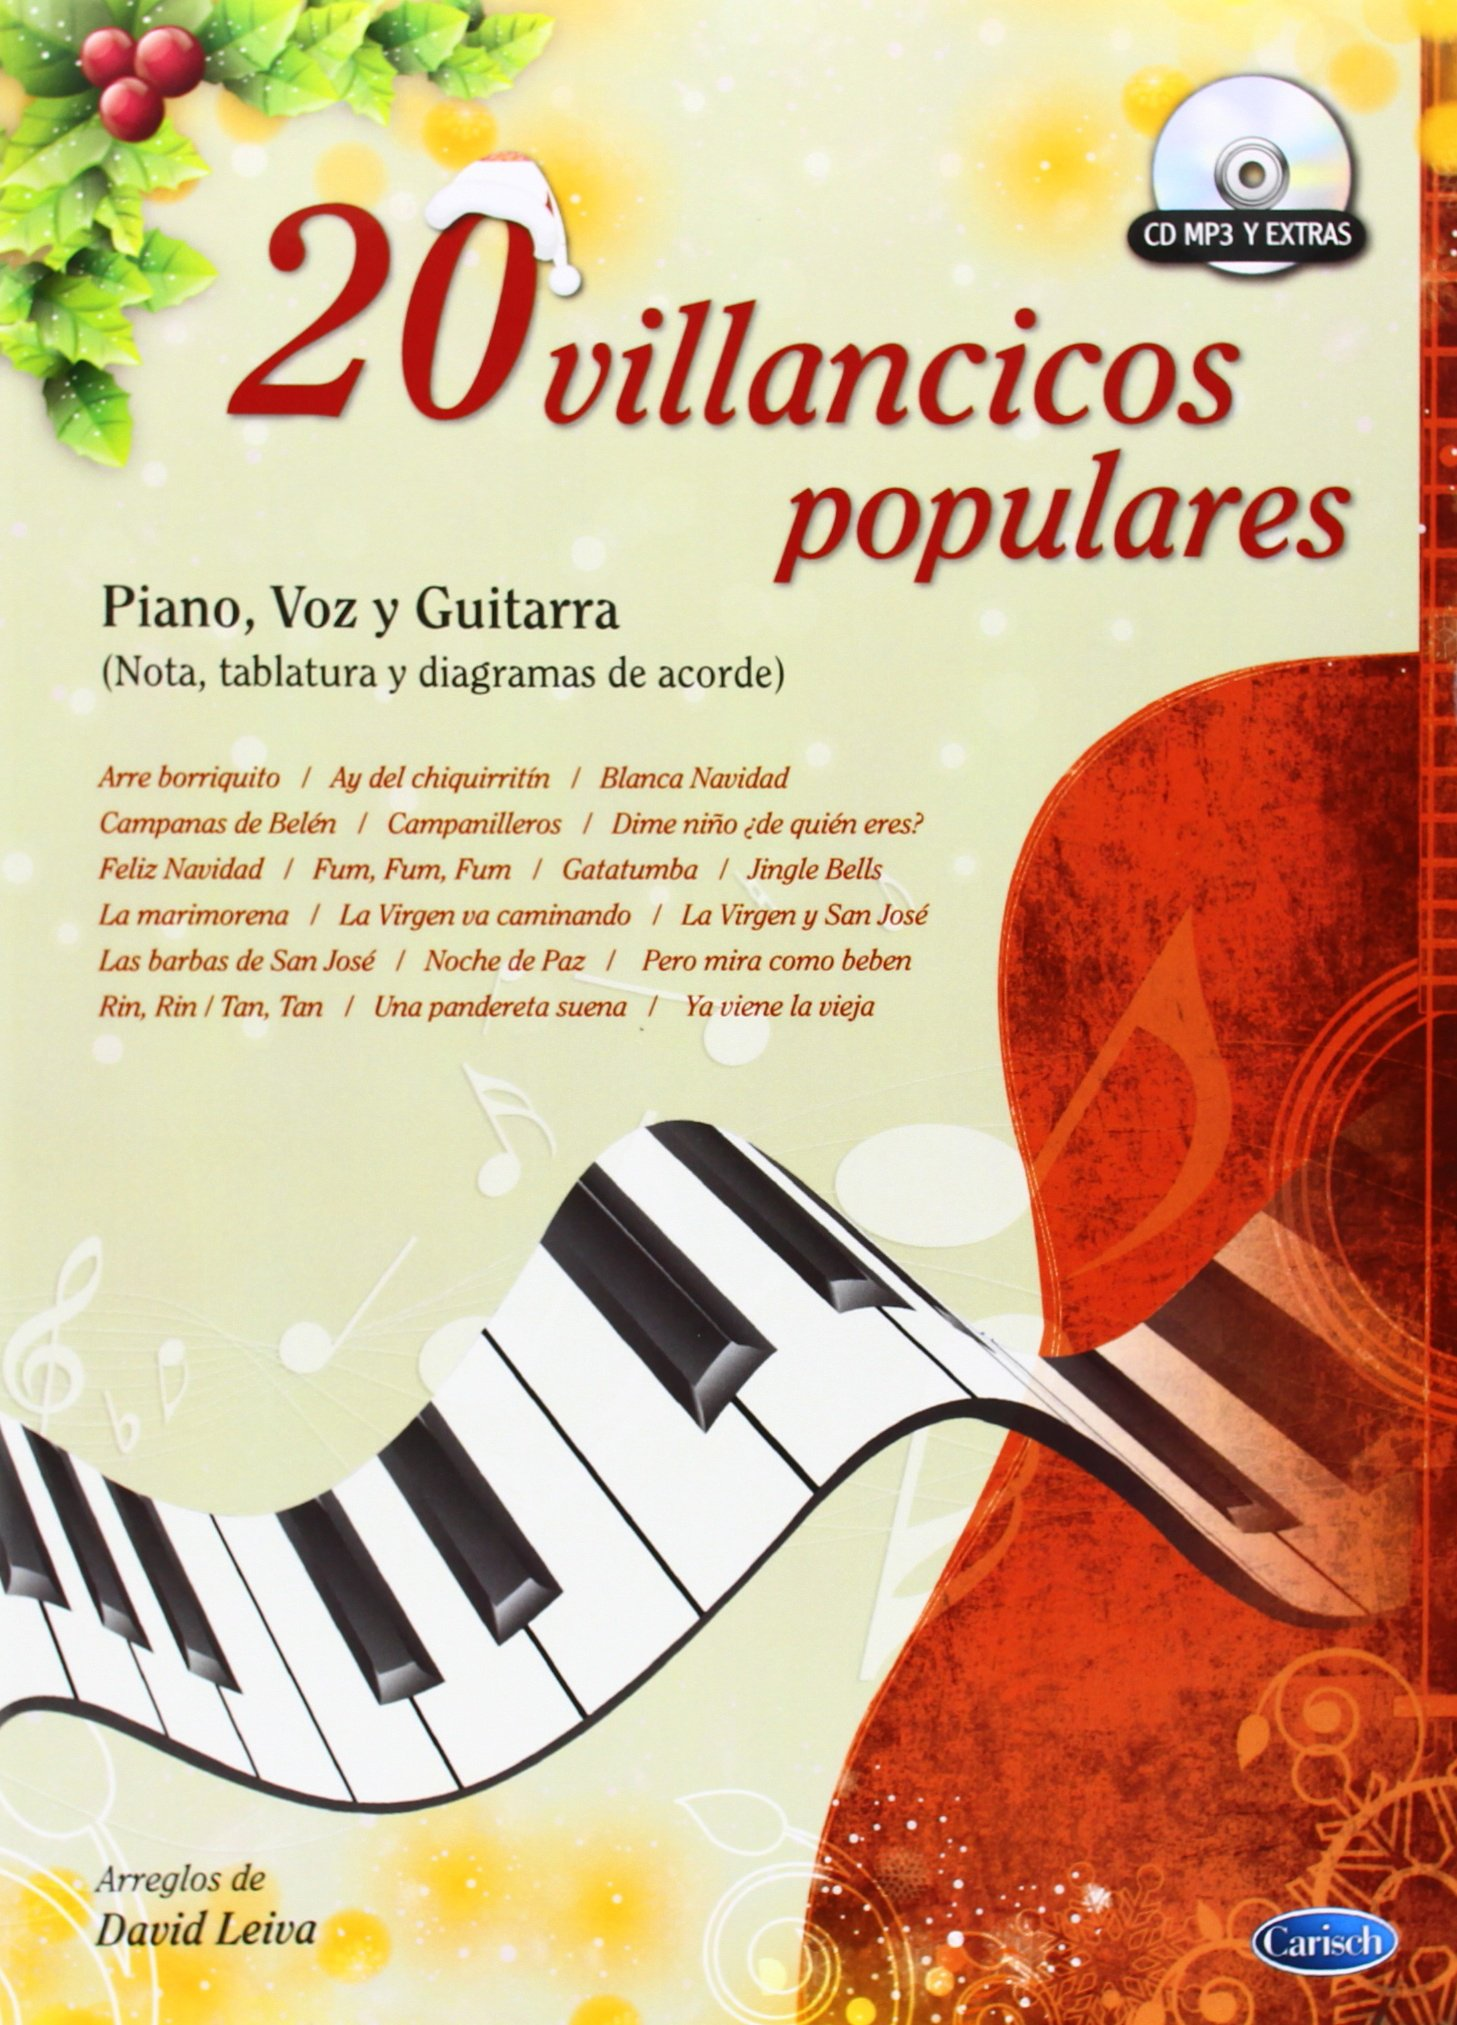 20 Villancicos Populares: Amazon.es: David Leiva Prados, Voice, Guitar Piano: Libros